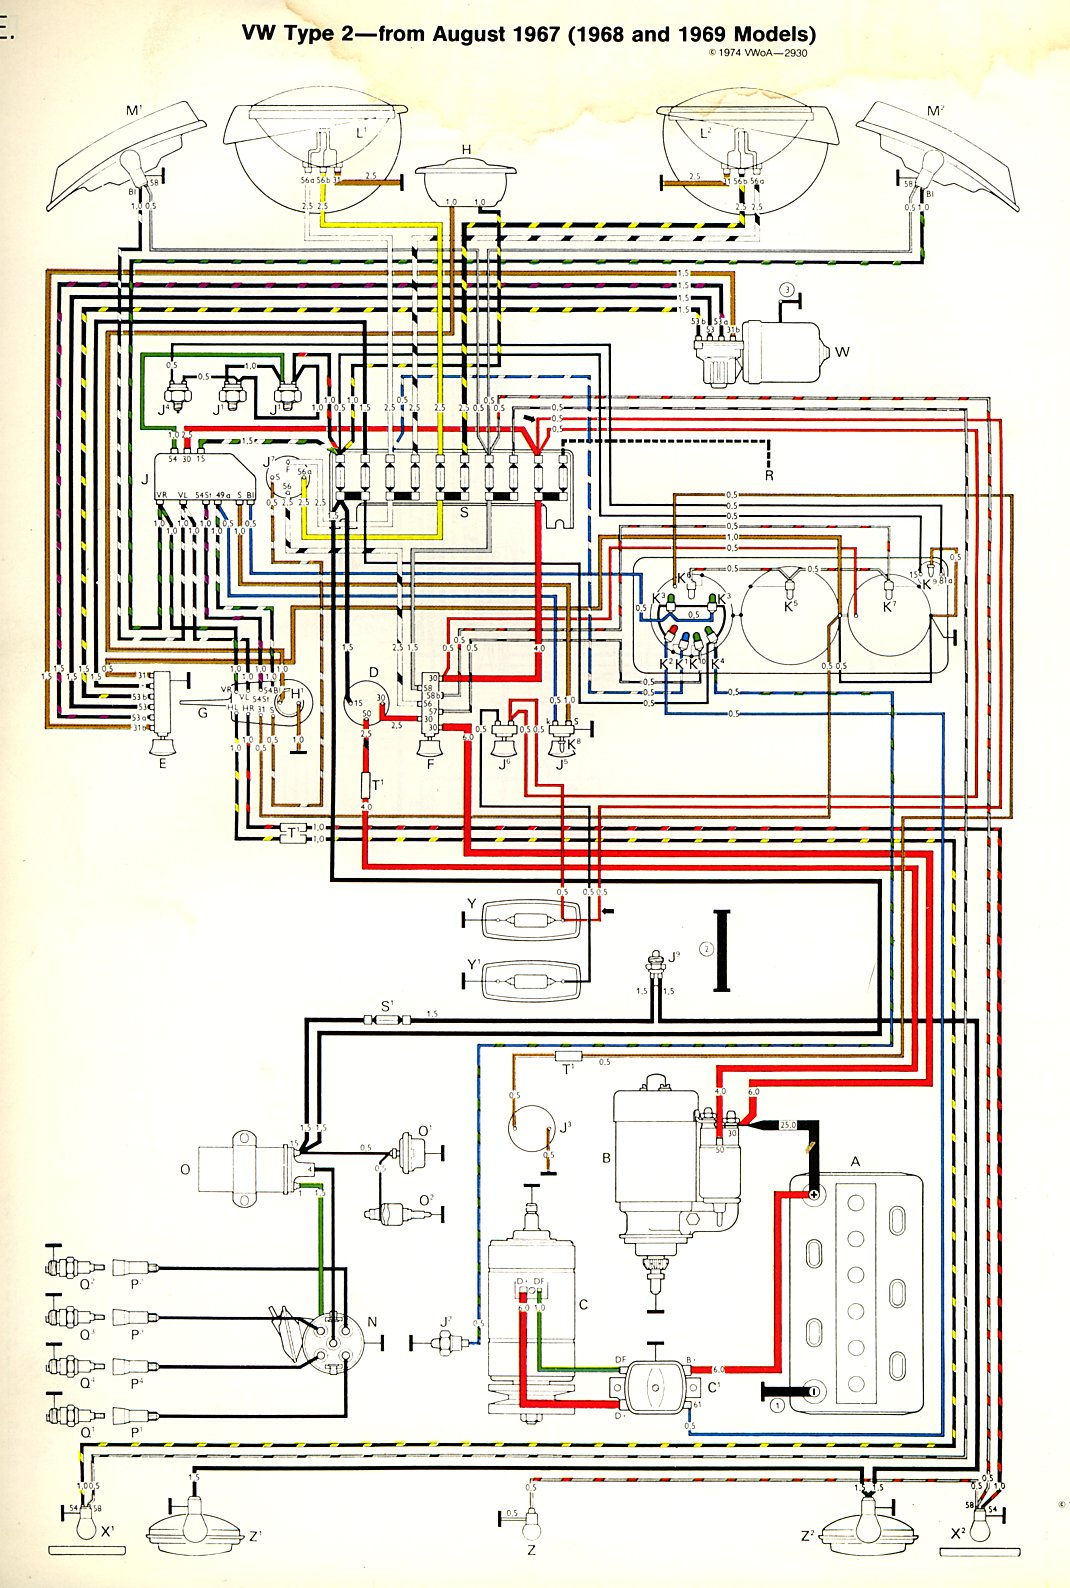 thesamba com type 2 wiring diagrams rh thesamba com 1966 VW Wiring Diagram 1962 VW Wiring Diagram